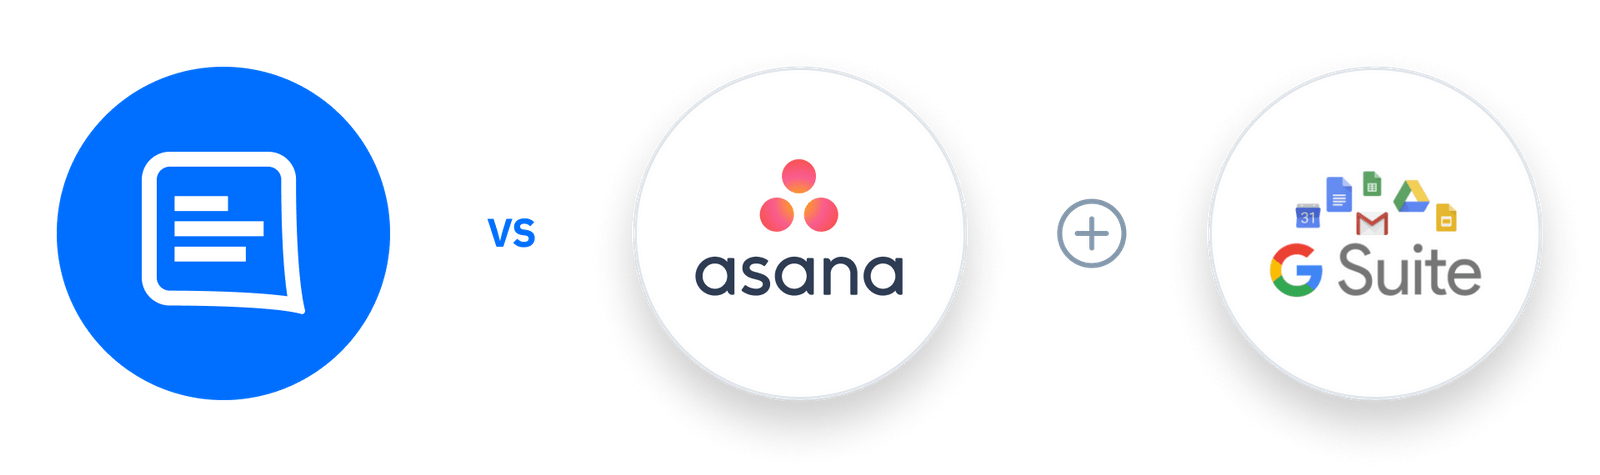 GC logo Vs Asana + G Suite logo